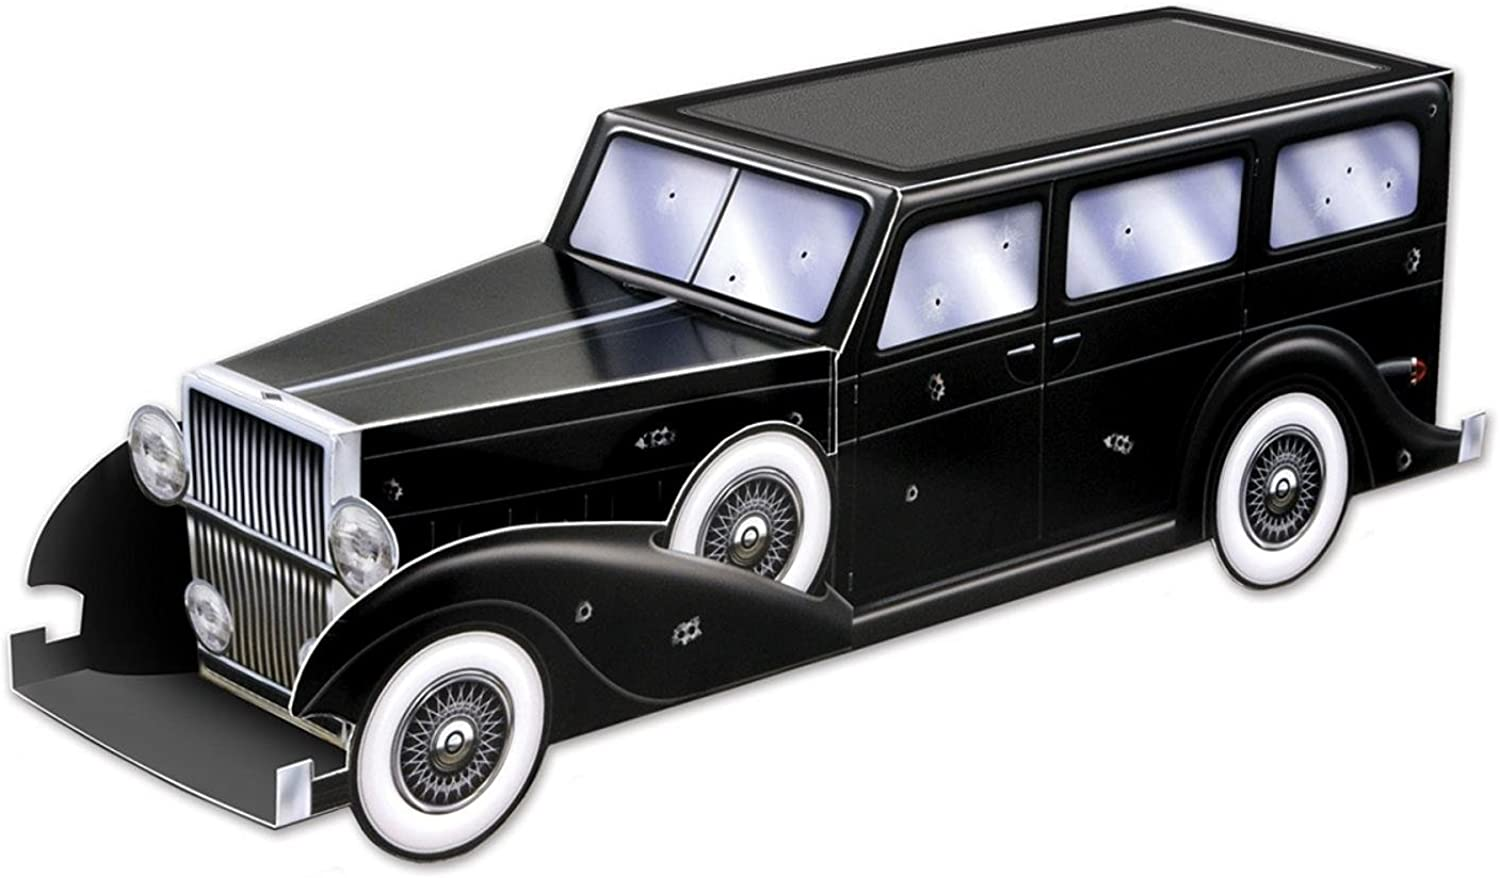 Club Pack of 12 Roaring 20's Themed 3D Gangster Car Centerpiece Party Decorations 12